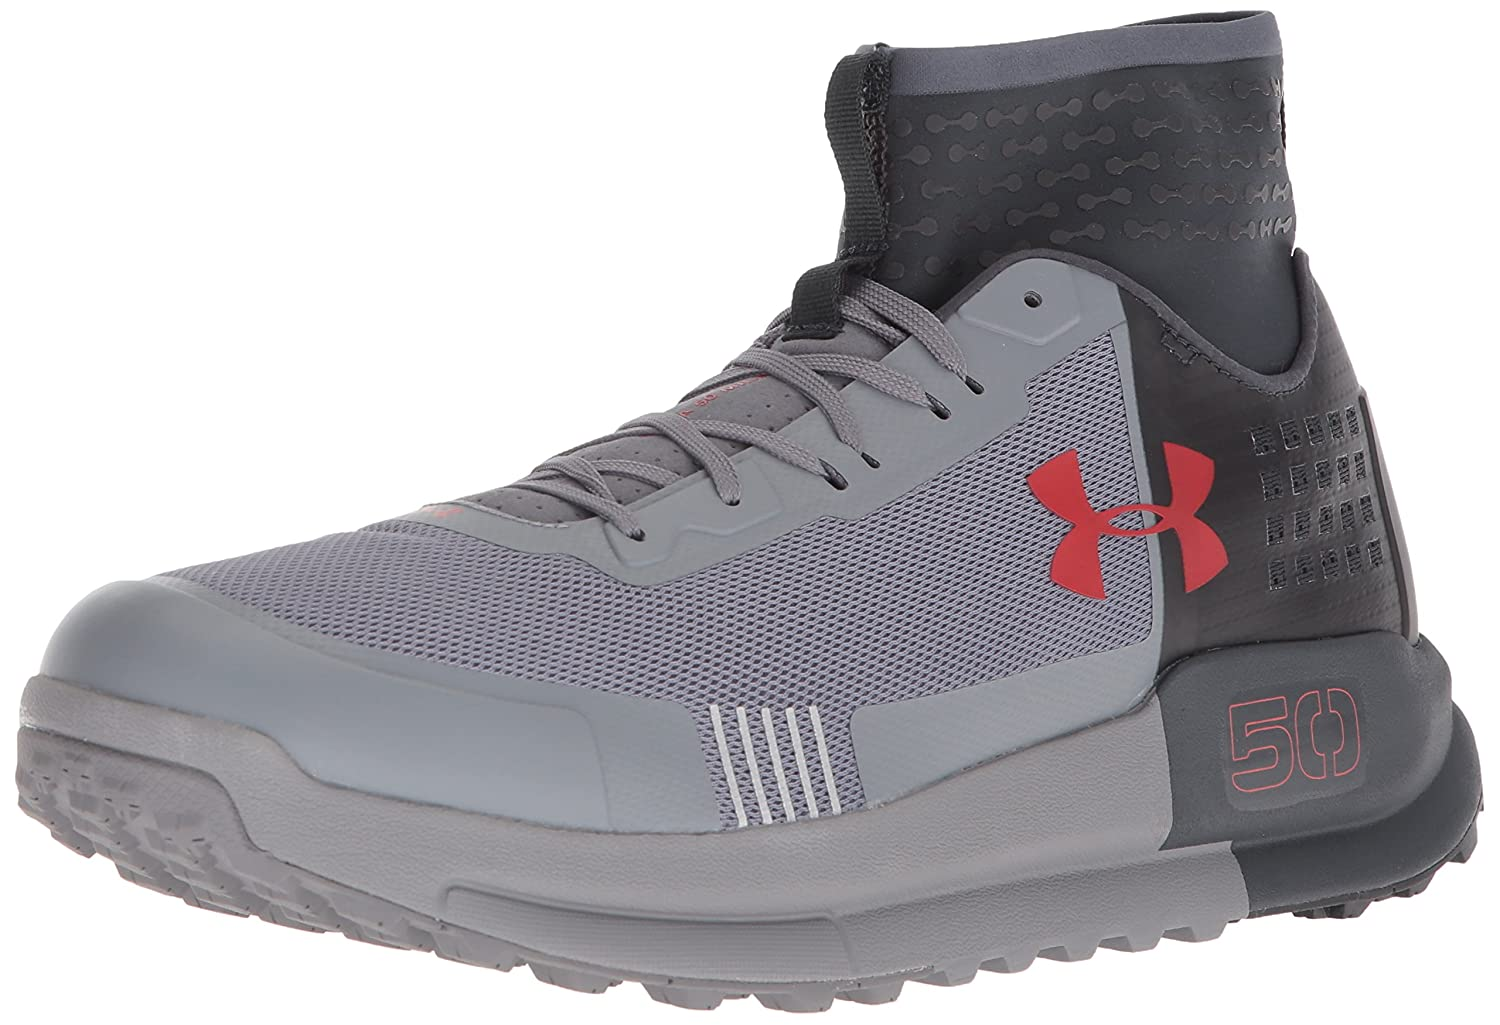 Under Armour Men s Horizon 50 Hiking Shoe